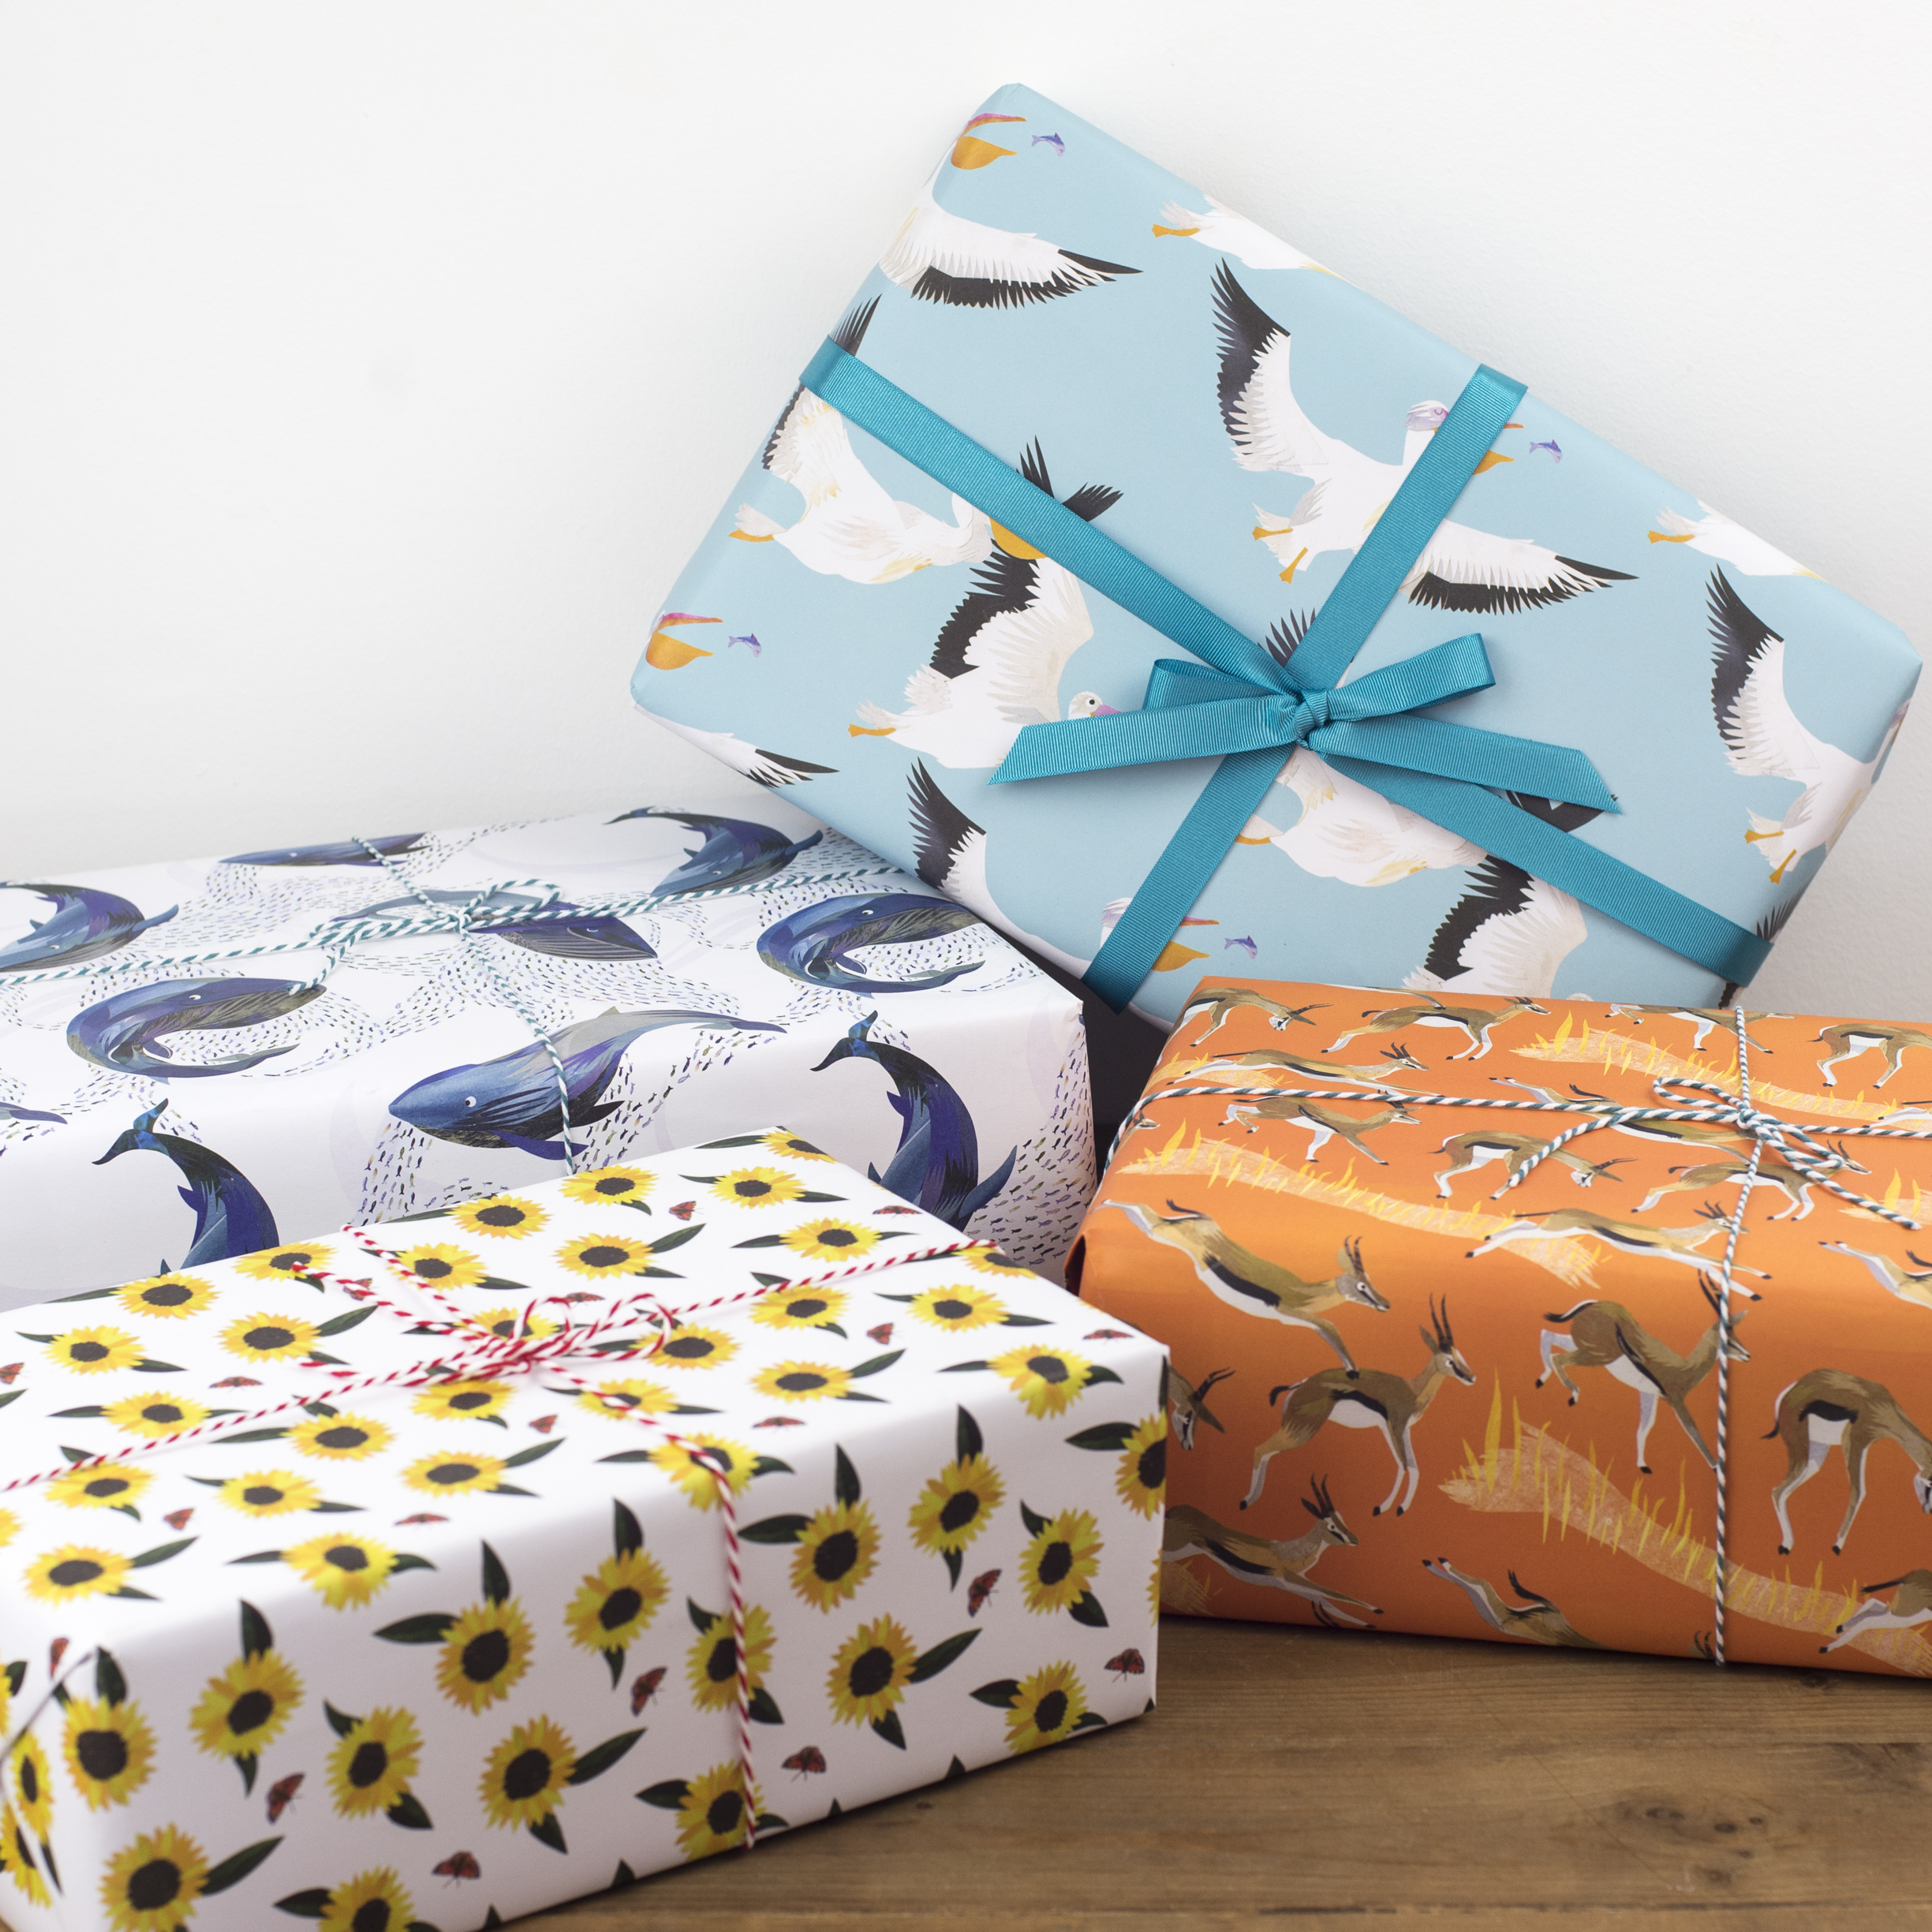 Gift, Stationery & Home - Product Gallery